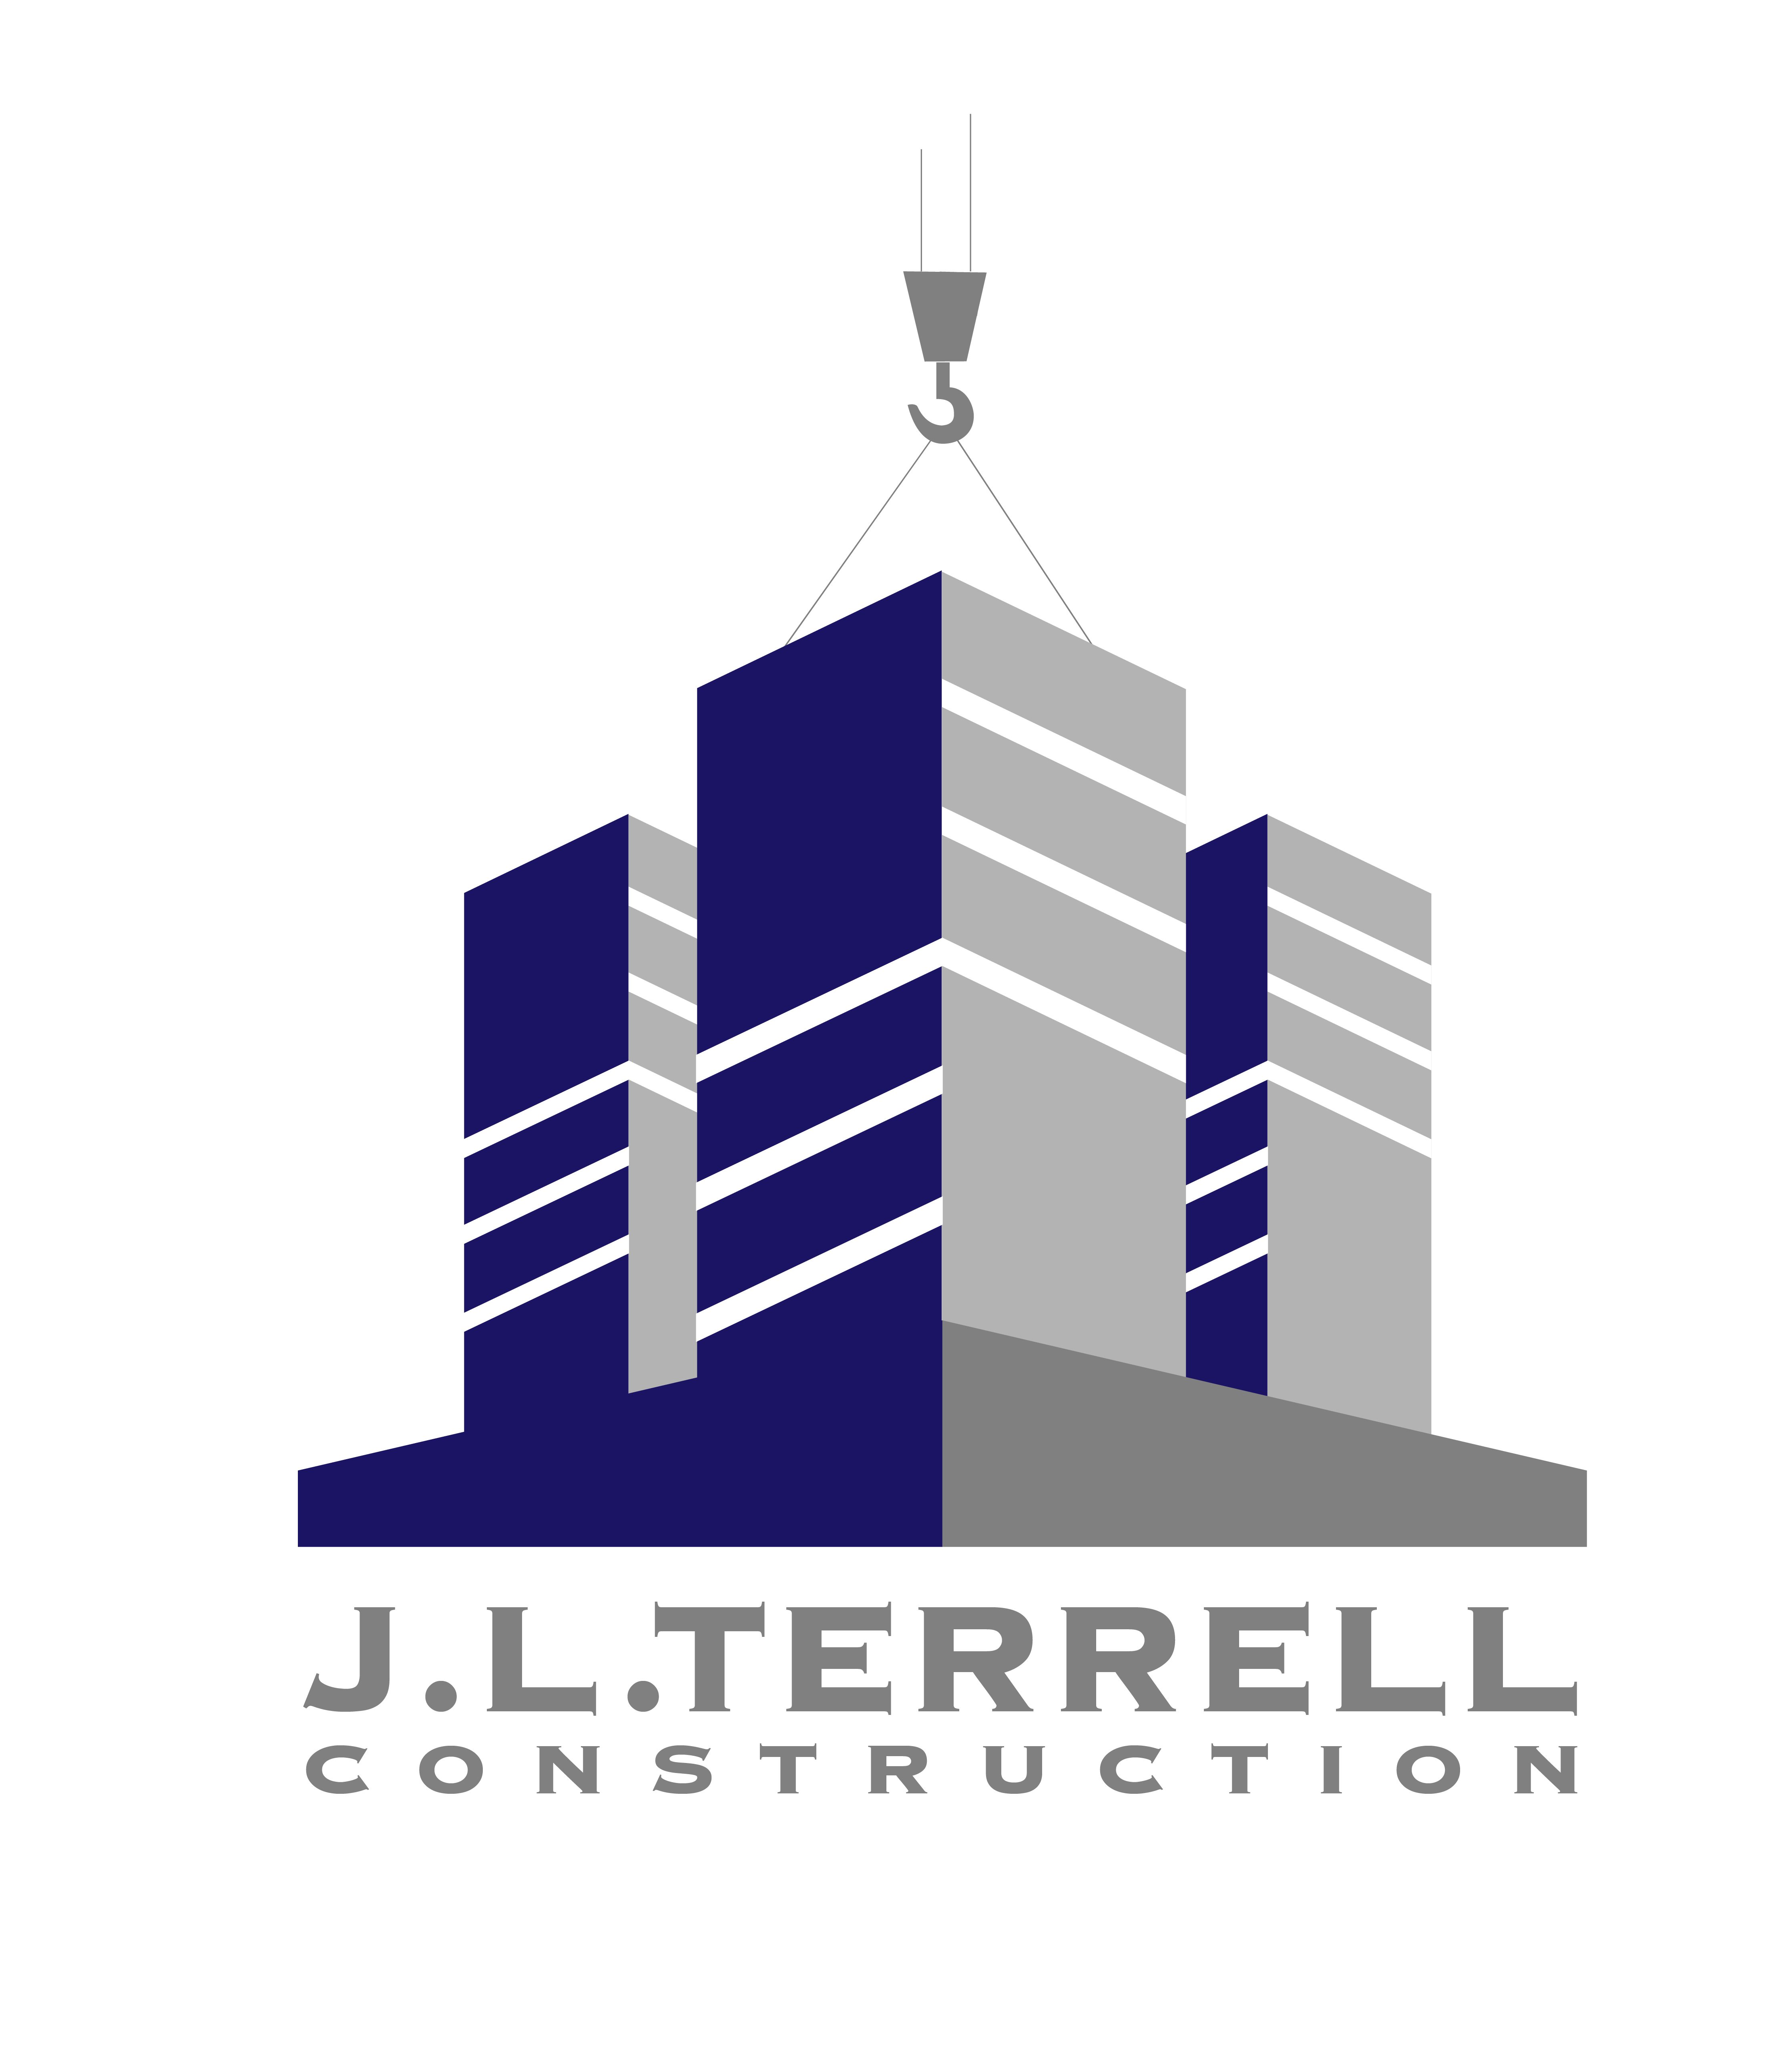 Welcome to J.L. Terrell Construction